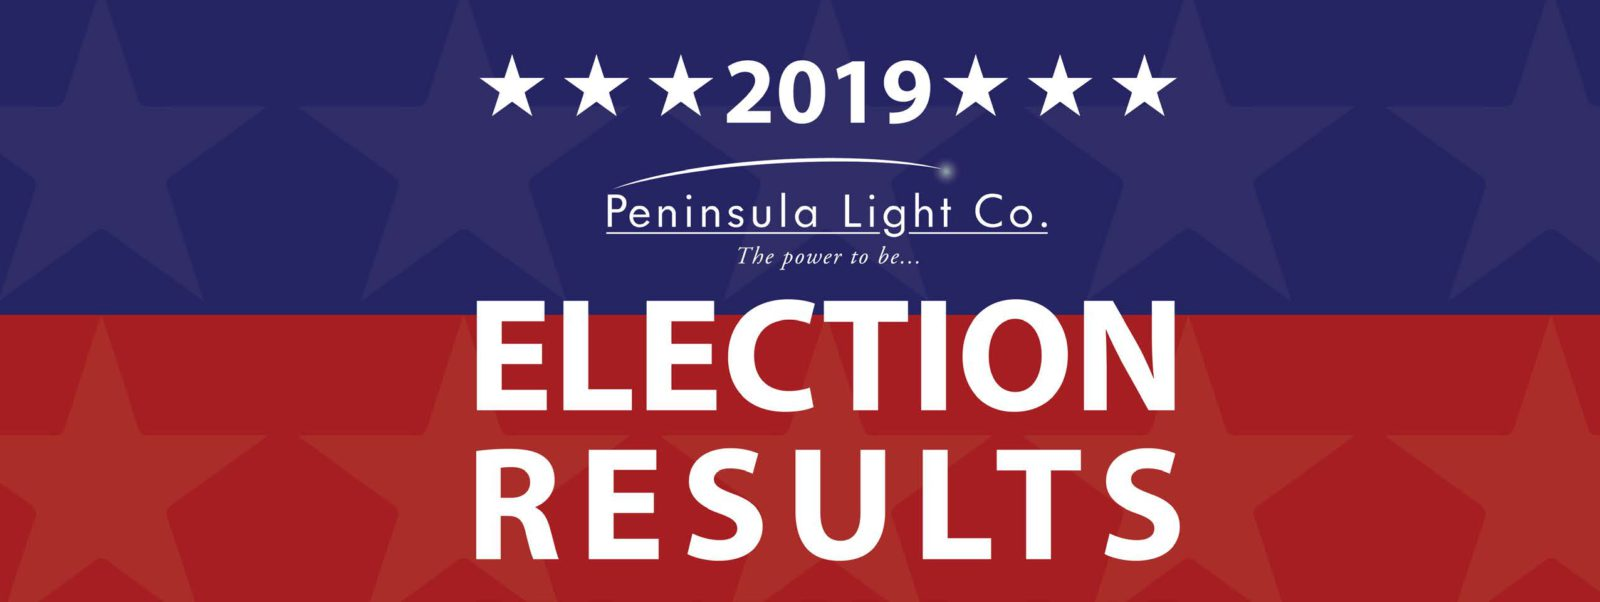 2019 Election Results. Peninsula Light Co. The power to be…